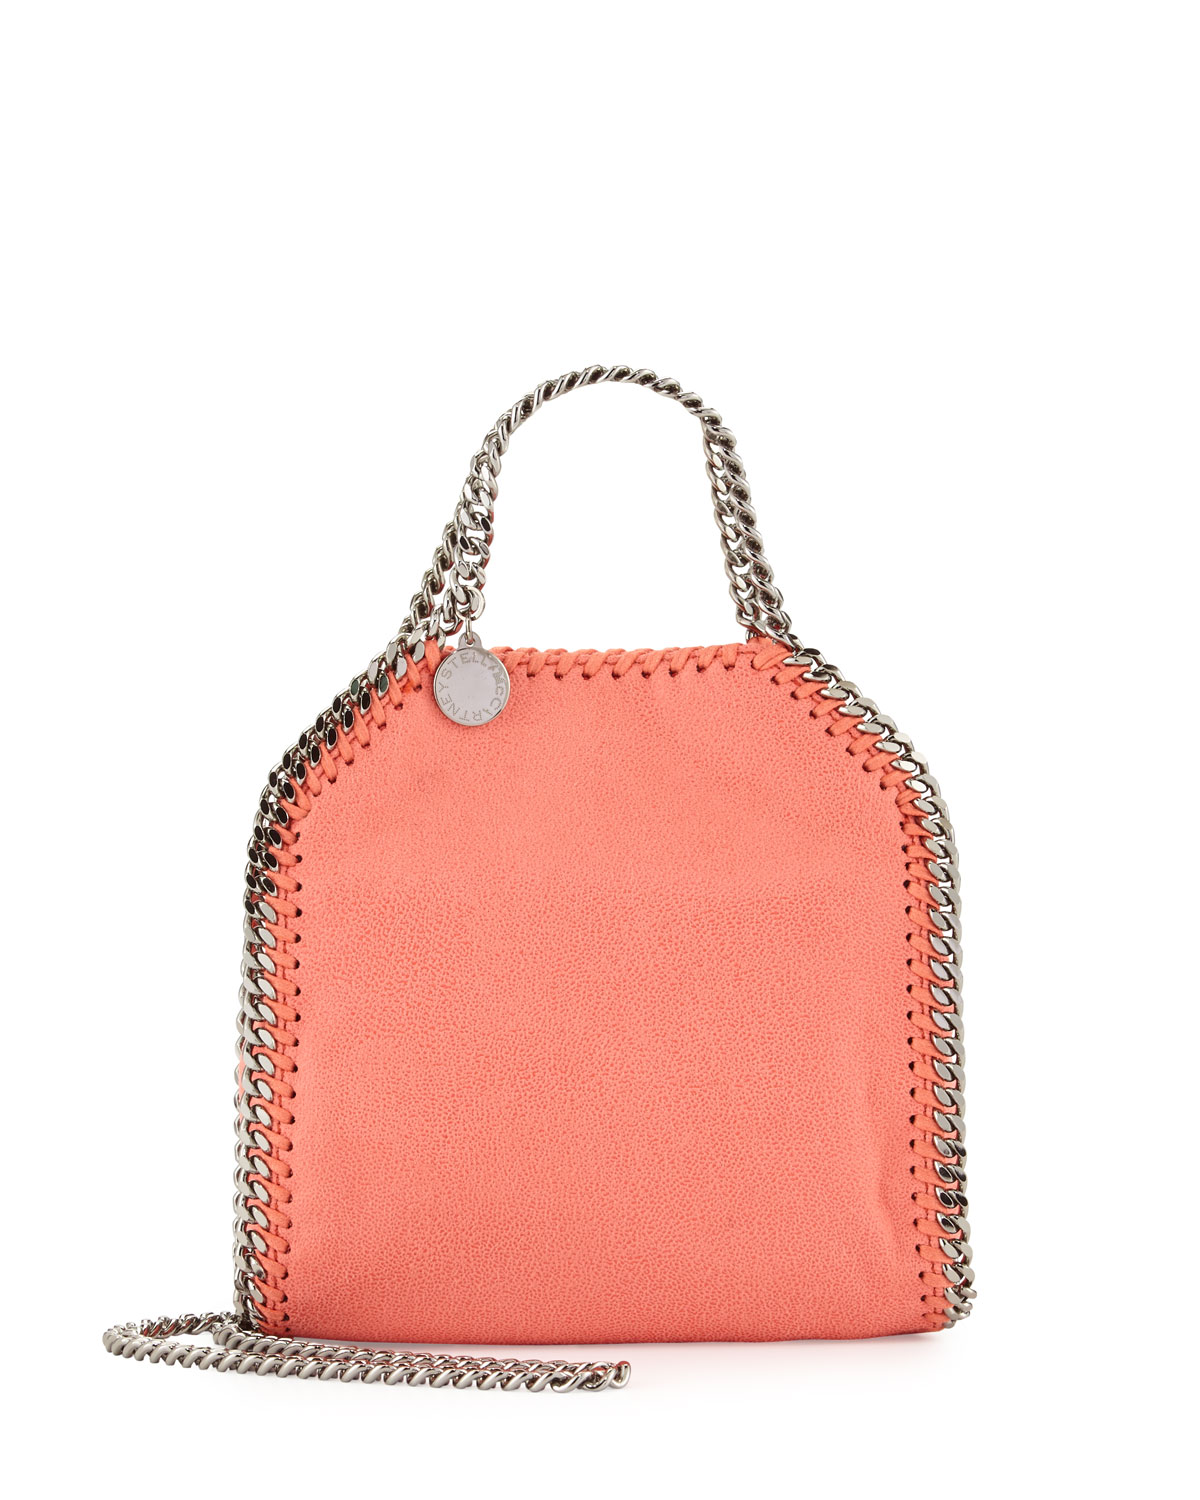 c5d8cd699201 Stella McCartney Falabella Tiny Tote